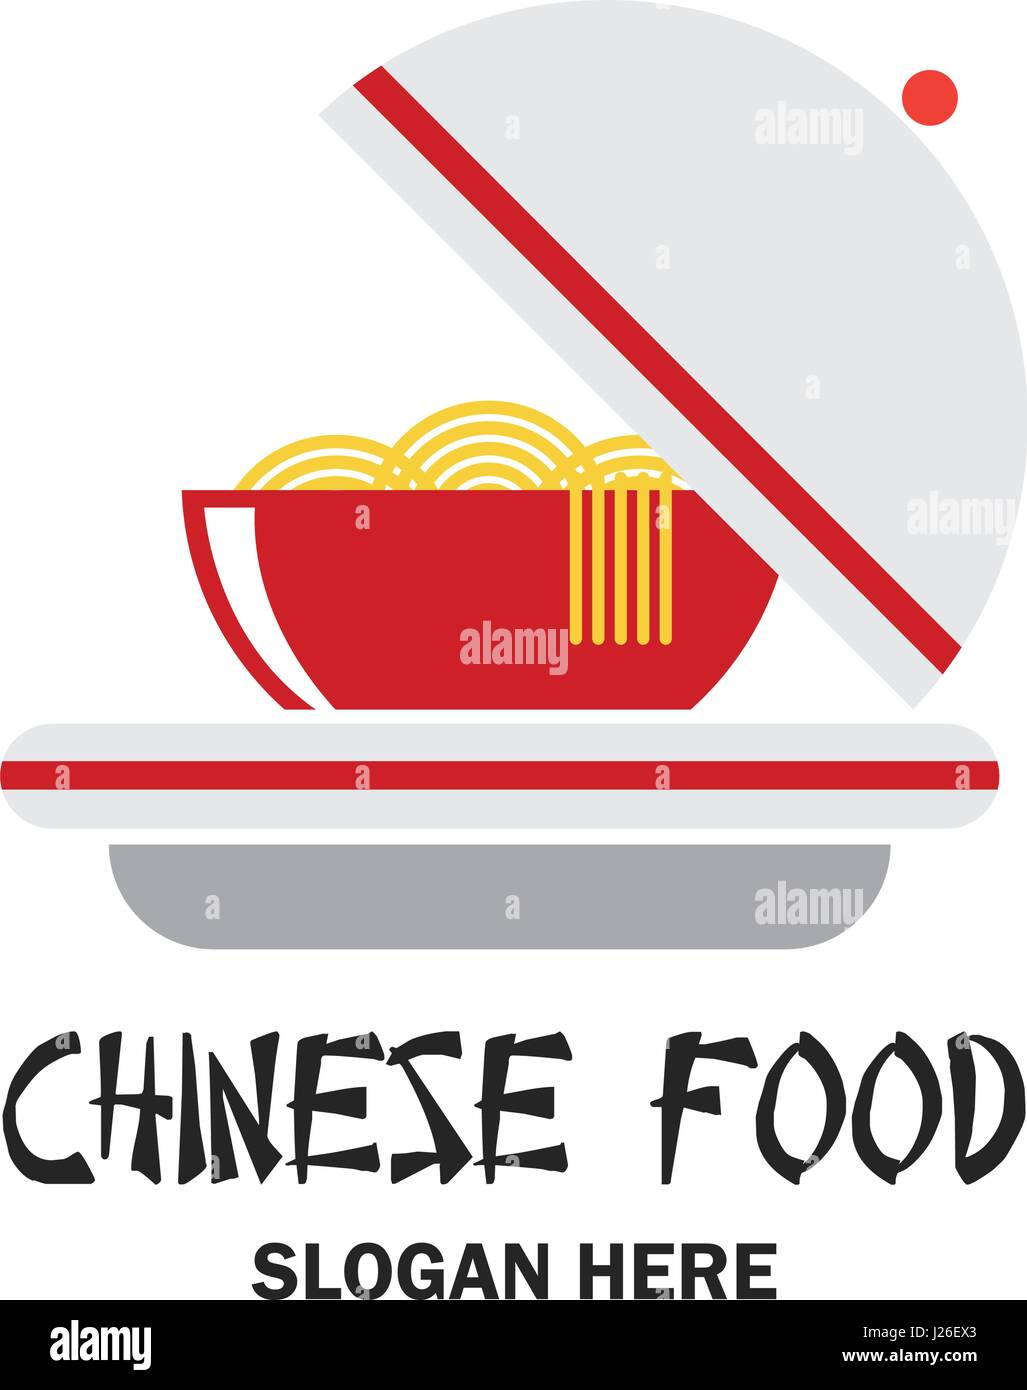 chinese restaurant chinese food logo with text space for your rh alamy com chinese restaurant loganville ga chinese restaurant loganville ga